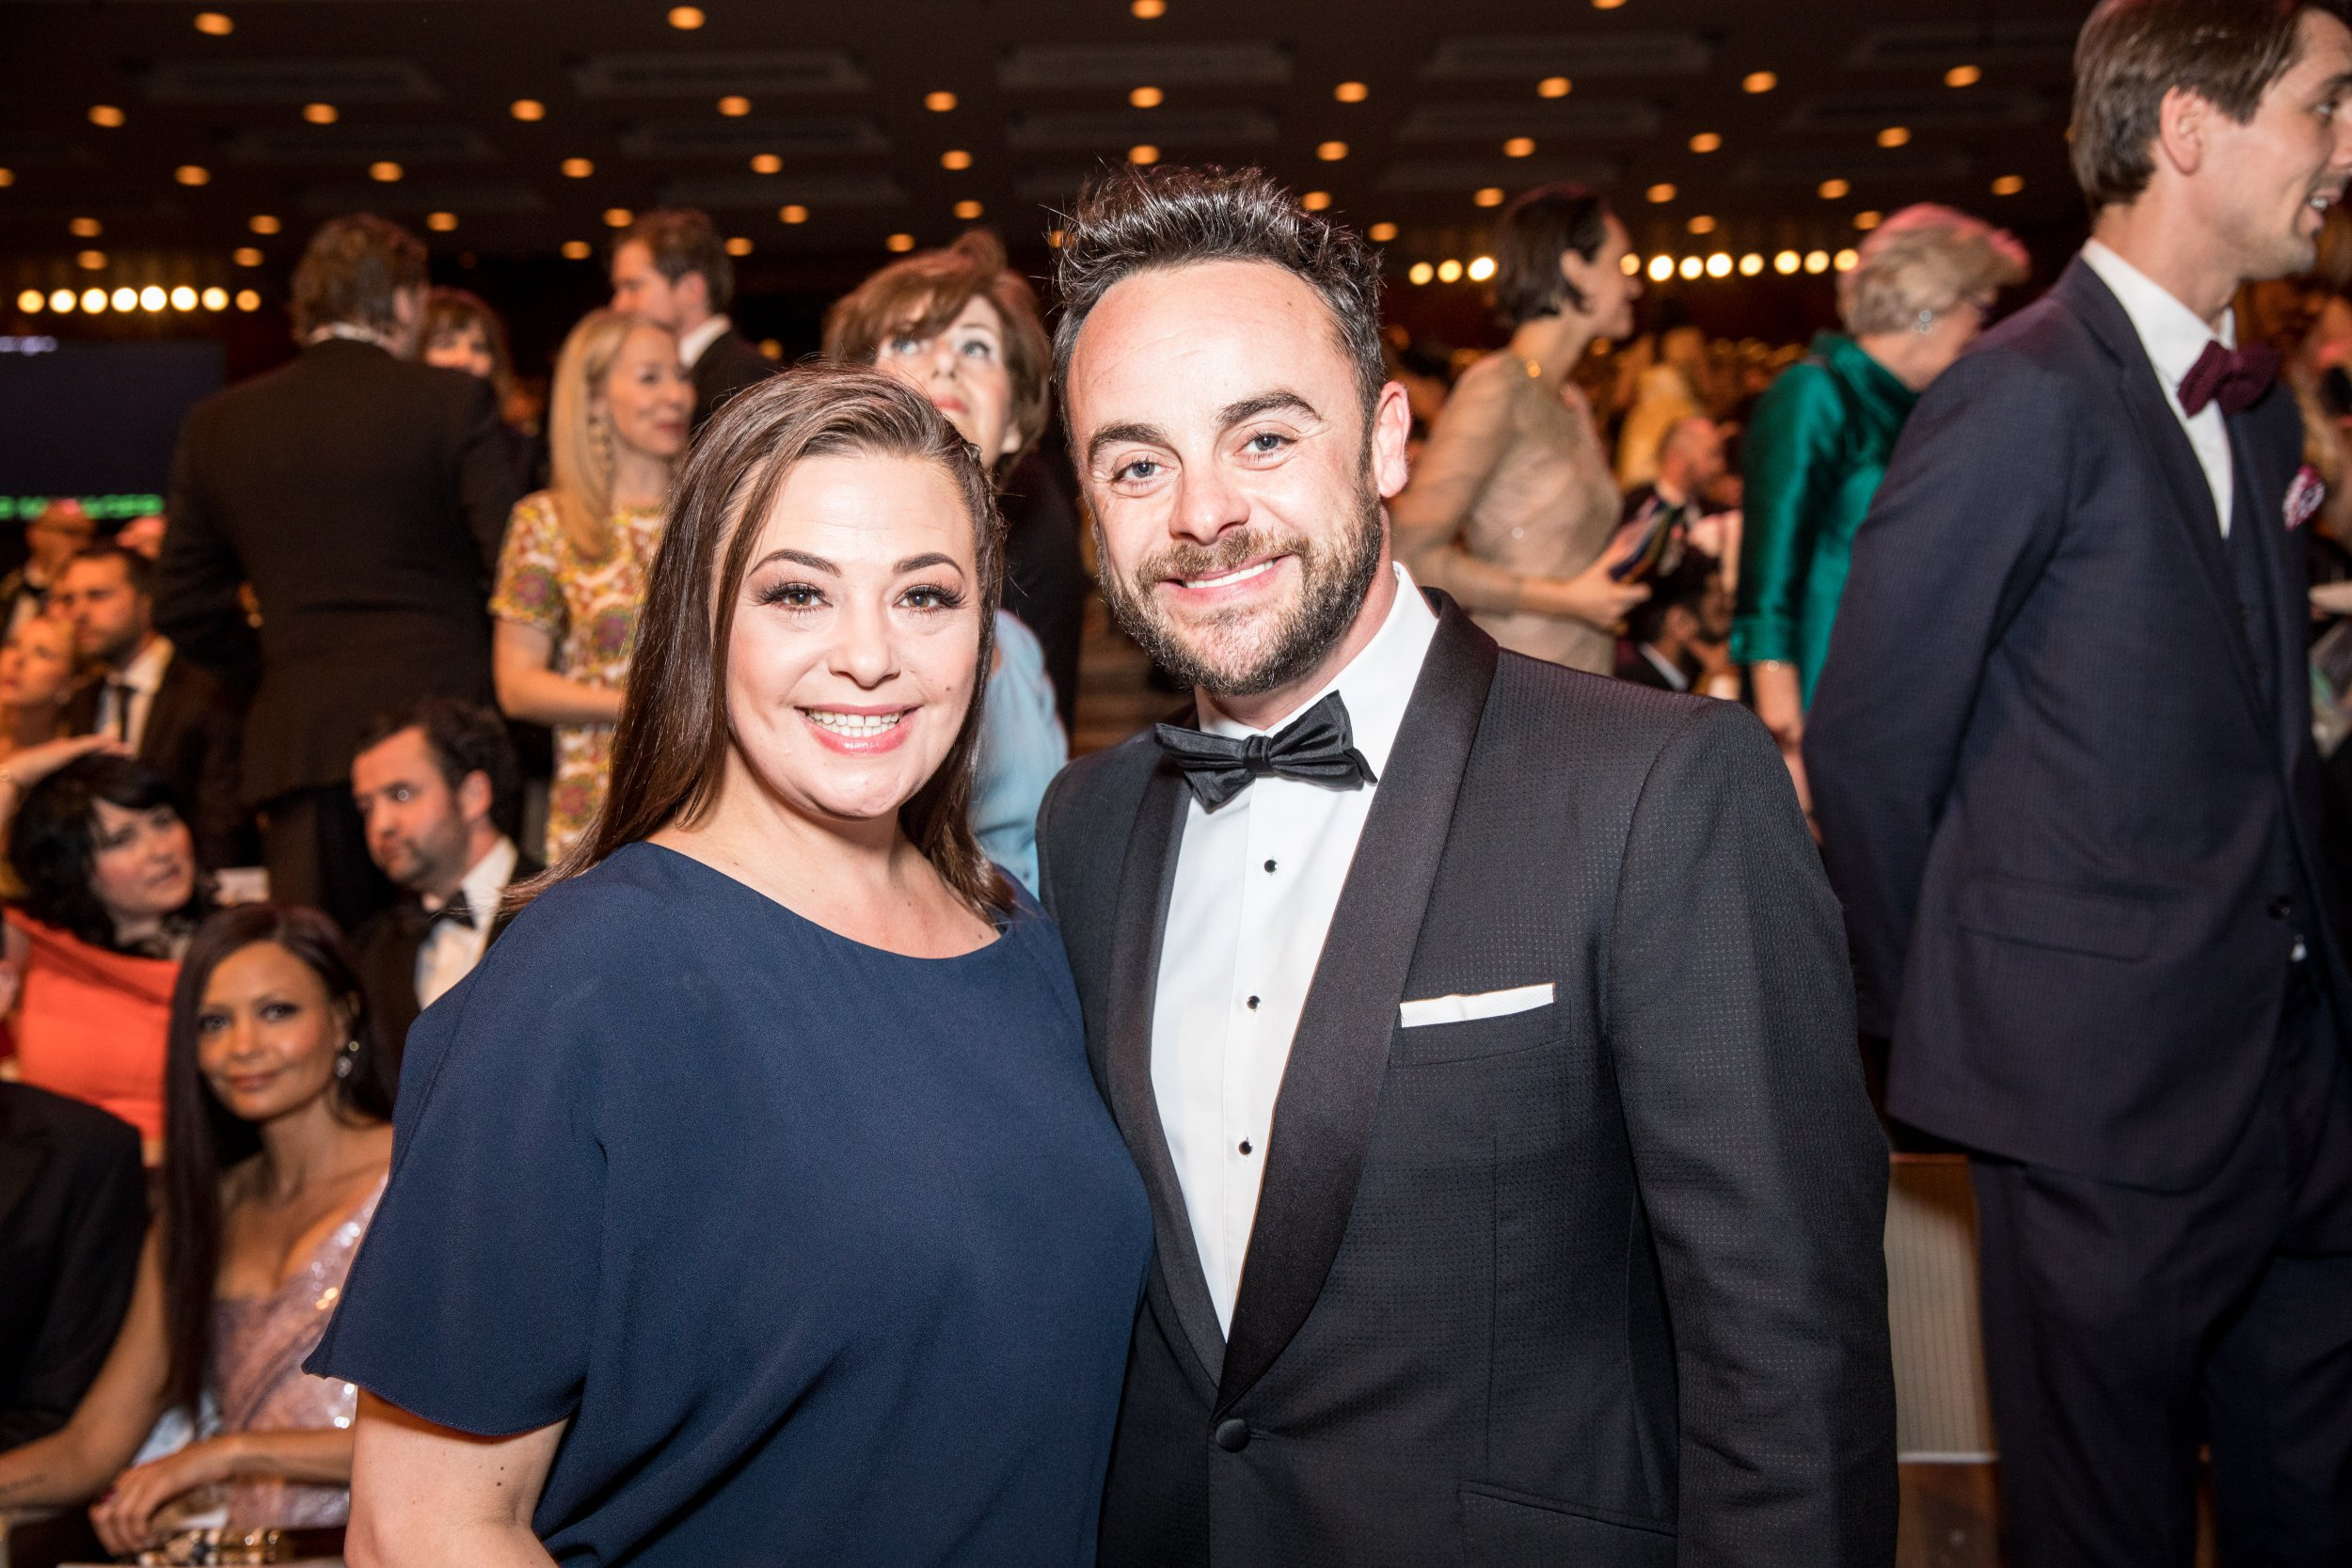 Mandatory Credit: Photo by Guy Levy/BAFTA/REX/Shutterstock (8821320t) Anthony McPartlin, Lisa Armstrong Virgin TV British Academy Television Awards 2017, Auditorium, Royal Festival Hall, London, UK - 14 May 2017